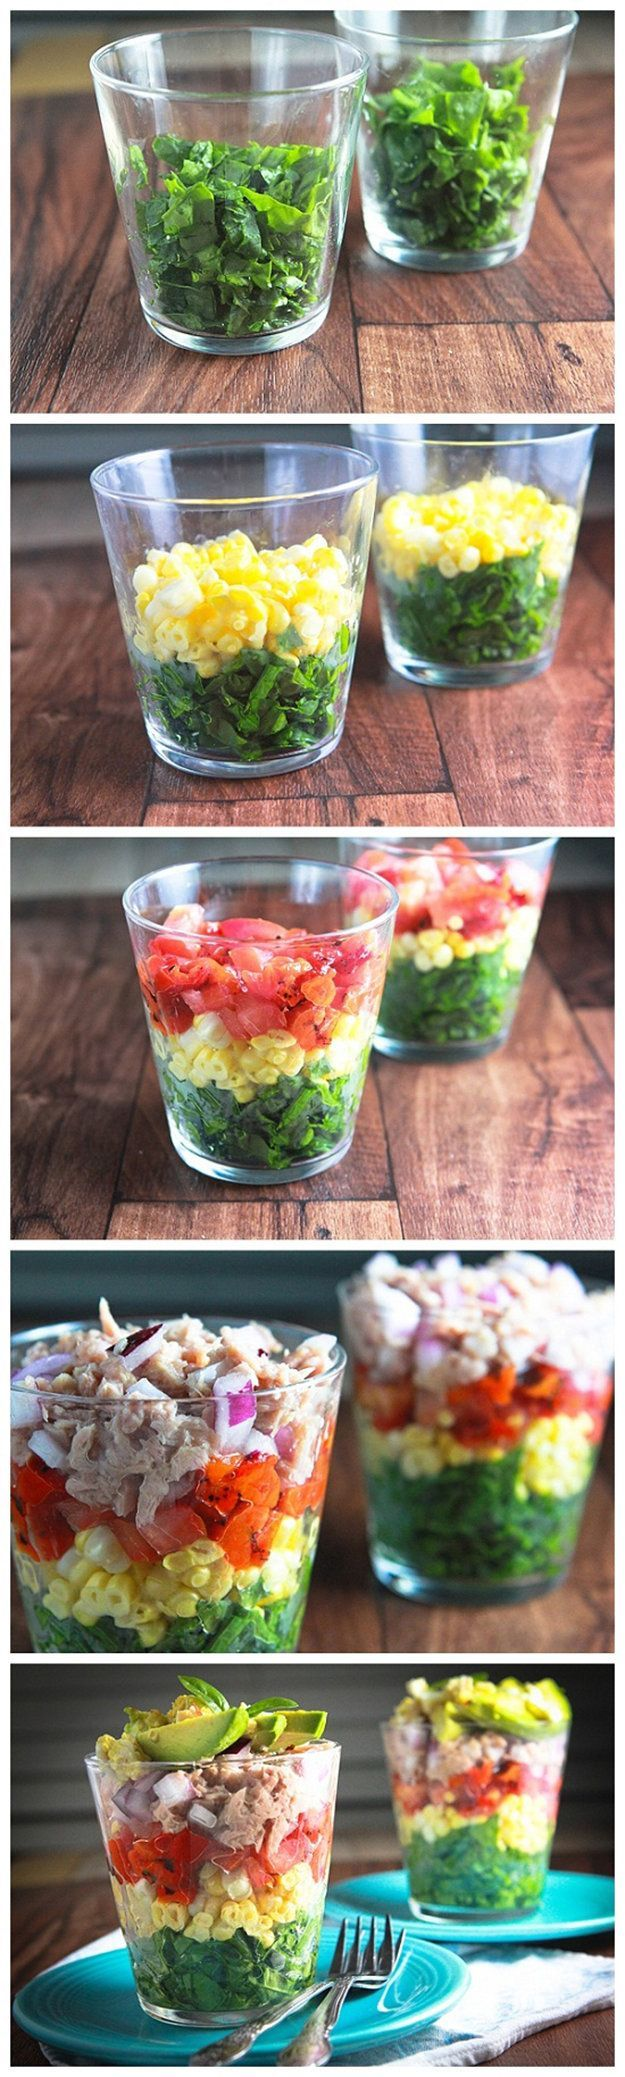 Easy Tailgate Food Idea!